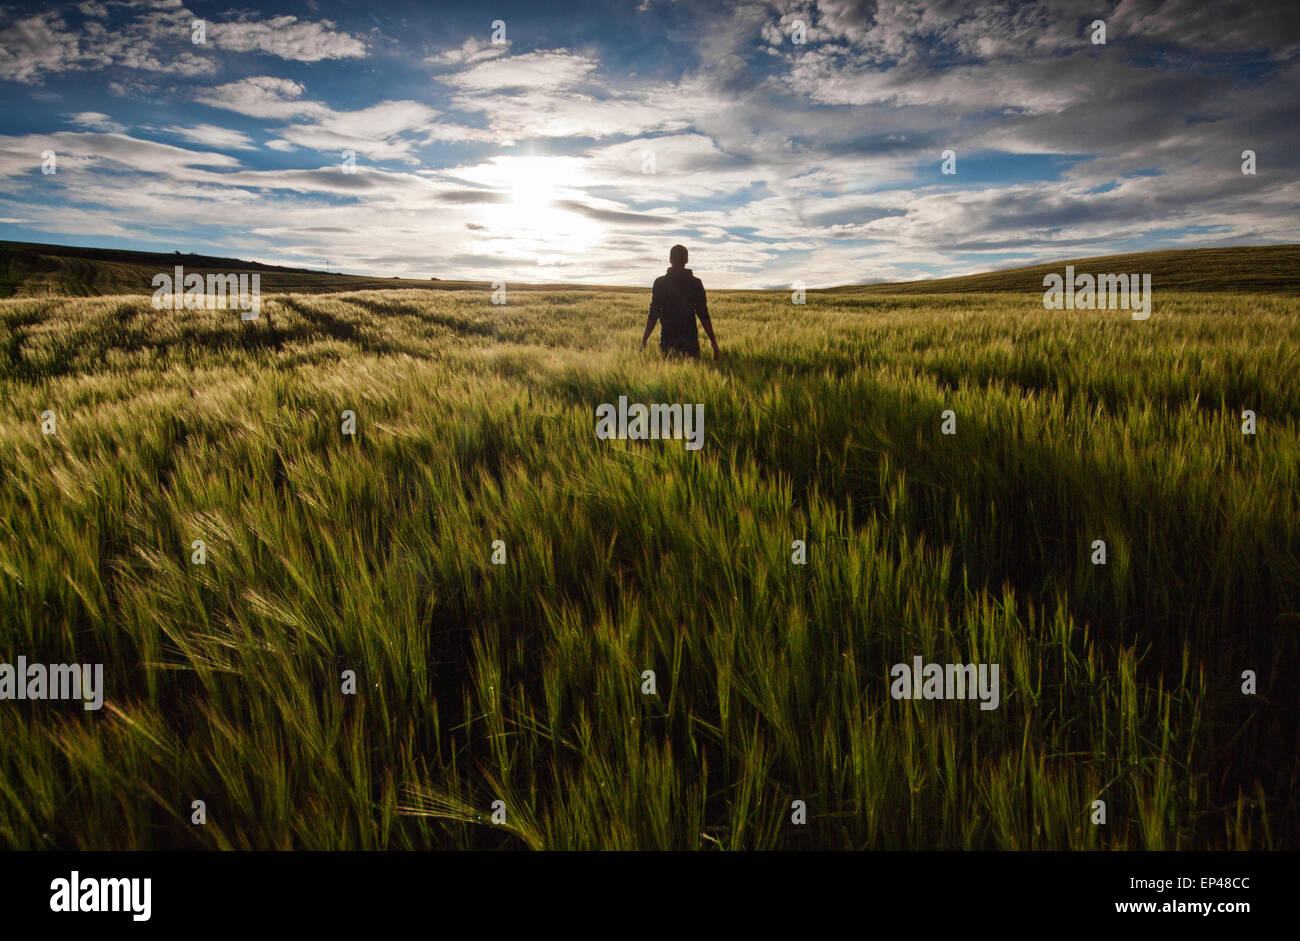 Rear view of a man standing in a green field at sunset - Stock Image